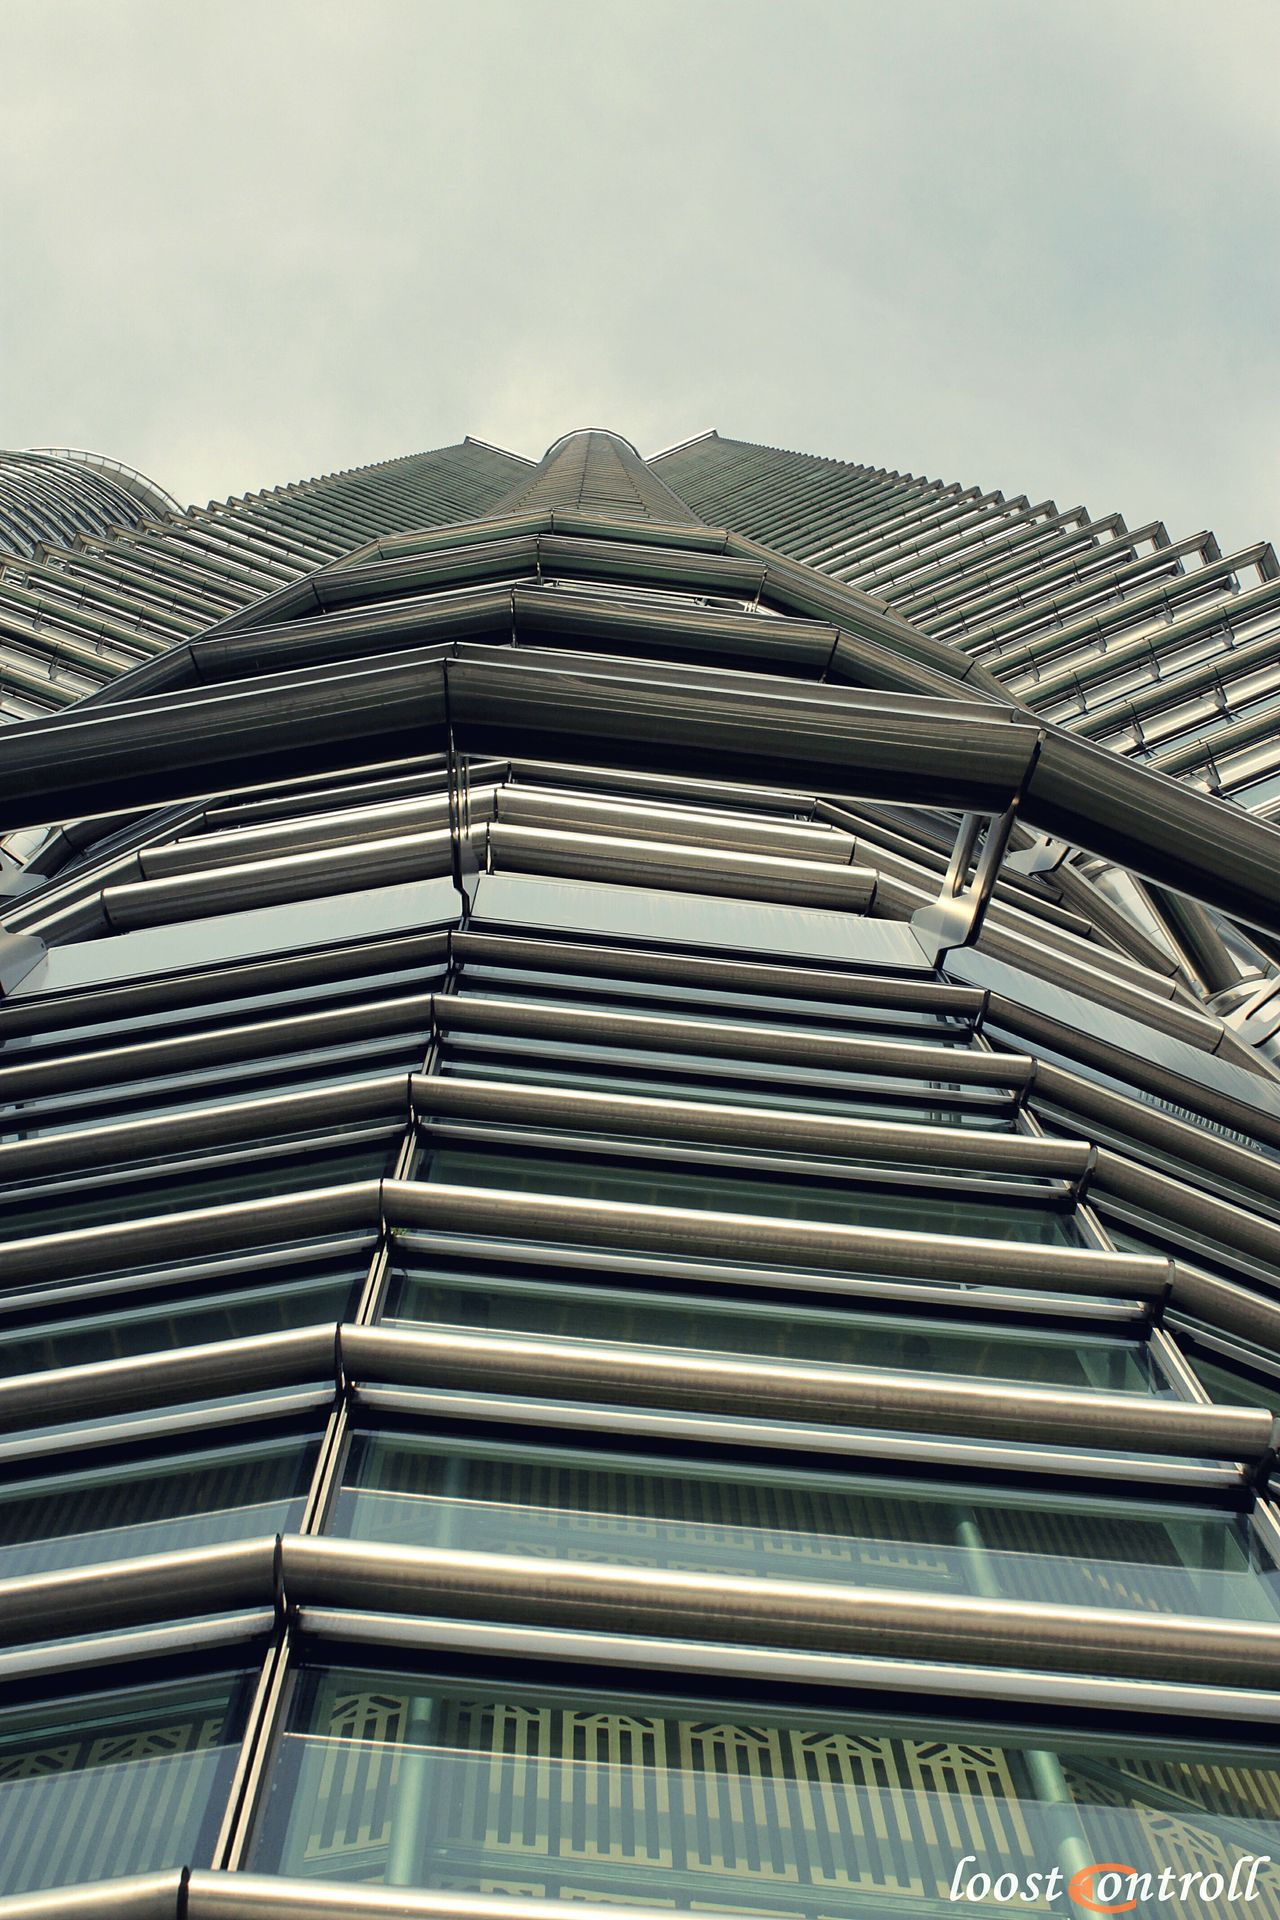 The City Light KLCC Twin Towers Outdoors Architecture Sky Day KLCC Tower Streetphotography Architecture Moment Of Silence City Cityscape